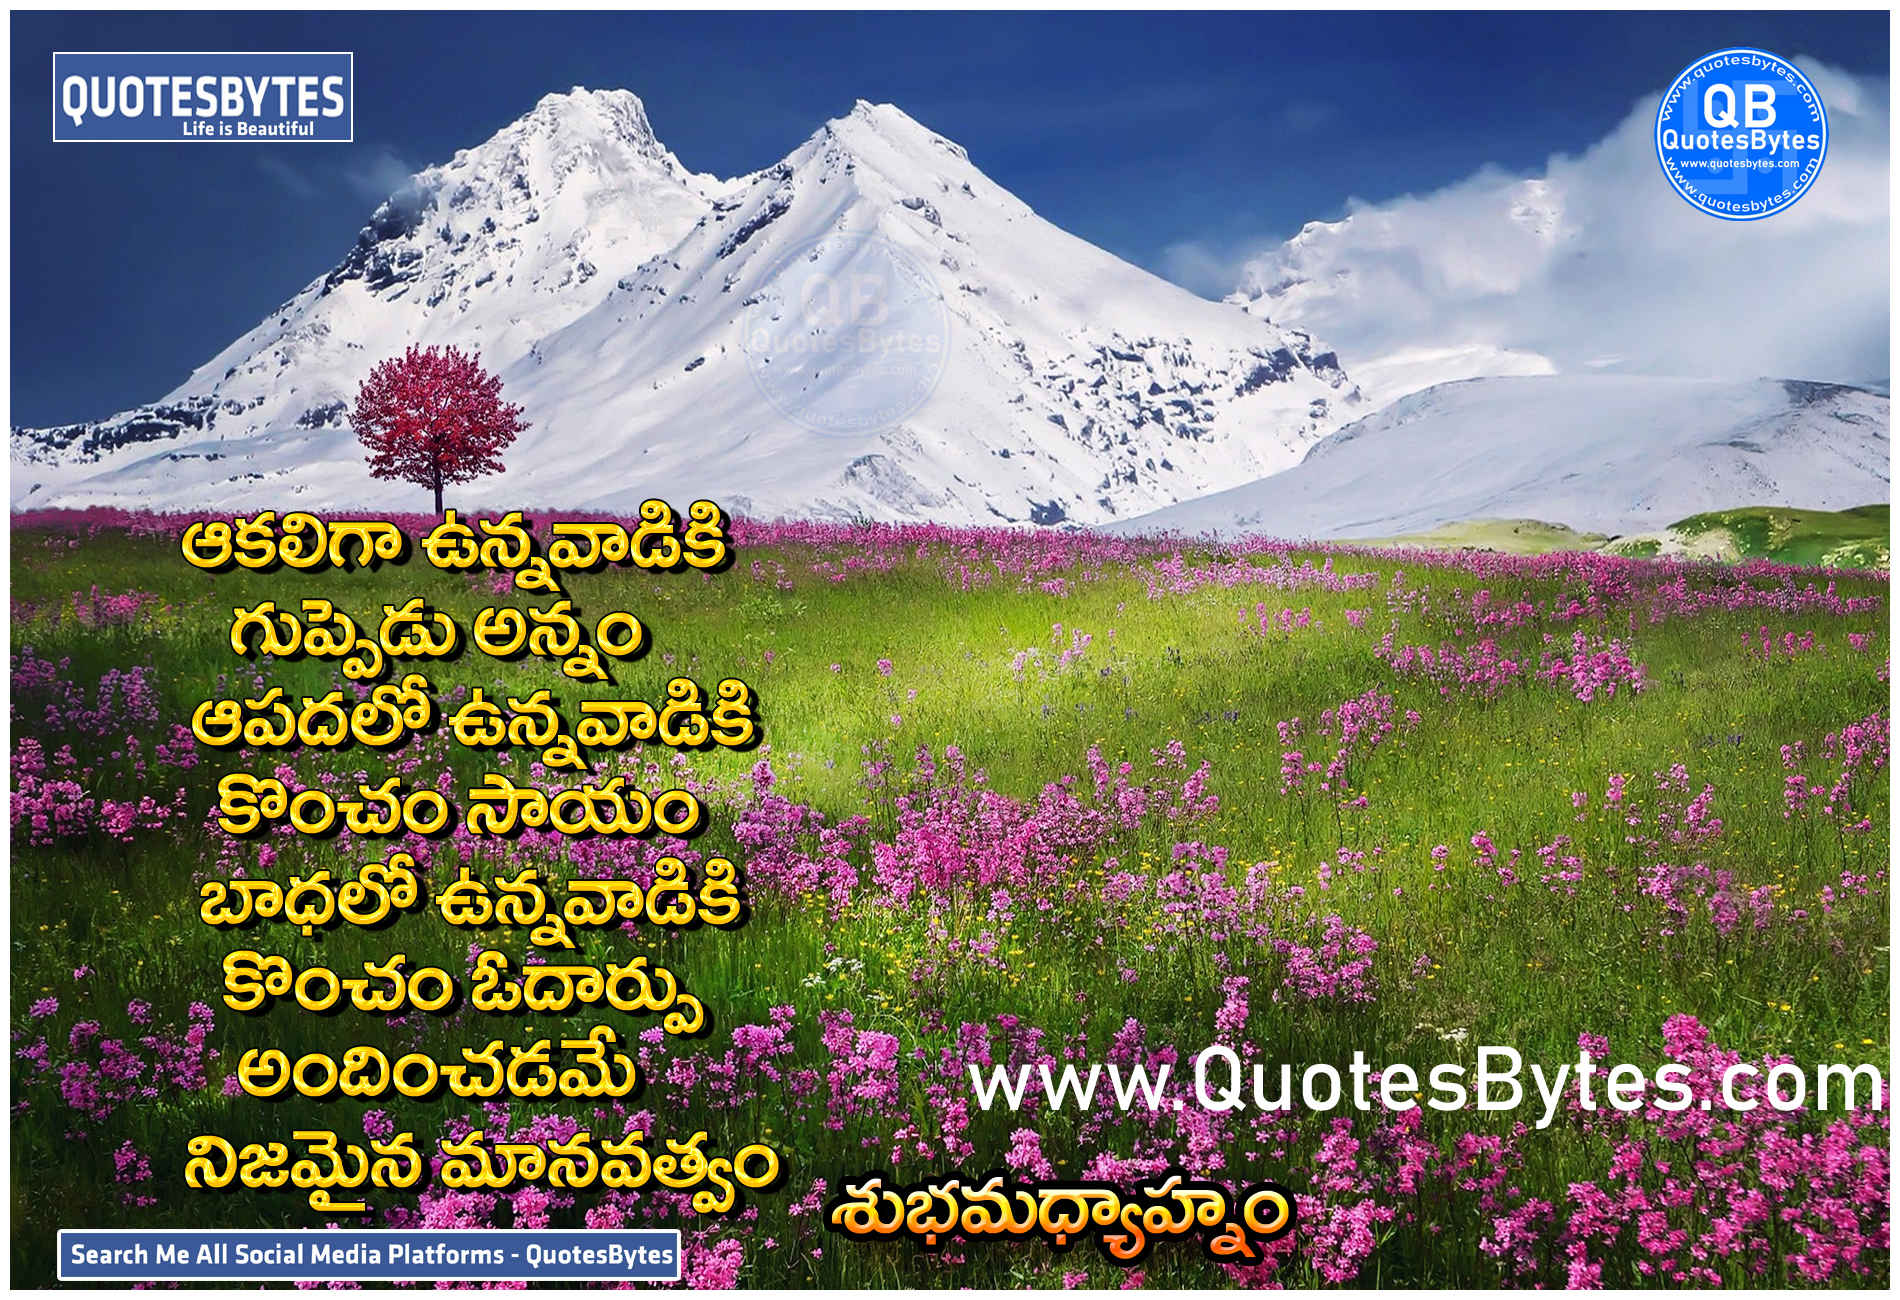 Good afternoon in Telugu,Good  afternoon  Quotes in Telugu,GOOD  AFTERNOON : QUOTES, IMAGES, SMS, WHATSAPP STATUS, WISHES, GREETINGS IN TELUGU,Good  afternoon  Quotes Telugu,Good  afternoon  Quotes in Telugu With Images,Telugu Good  afternoon  Greetings,Telugu Good  afternoon  Quotes,Good  afternoon  Quote In Telugu,Best Good  afternoon  Quotes in Telugu with Images for 2021,Good  afternoon  Quotes Inspirational In Telugu,Telugu Good  afternoon  Inspirational Quotes-Messages On Life In Telugu,Good  afternoon  Telugu Images with Quotes,Heart touching good  afternoon  quotes in telugu,Good  afternoon  Quotes In Telugu,Telugu New good  afternoon  quotes and Wishes 2021,Good  afternoon  Wishes in Telugu,Beautiful Good  afternoon  quotes in telugu ,Good  afternoon  Quotes With Images ,Good  afternoon  Quotes, Wishes In Telugu [ Latest 2021 ],Telugu Inspirational Good  afternoon  Quotes,Good  afternoon  Telugu Quotes,Telugu Good  afternoon  Quotes images,Telugu inspirational Quotes images, Telugu Good  afternoon  quotes in telugu,Good  afternoon  Inspirational Quotes Telugu,good  afternoon  kavithalu images in telugu,Best Good  afternoon  Quotes Telugu Images,latest quotes about good  afternoon  quotes,Best Good  afternoon  Quotes and Wishes,latest quotes in telugu,Best Good  afternoon  Quotes In Telugu - Day Wishs,latest quotes for inspirational quotes in telugu,Good  afternoon  Quotes Status SMS,top telugu good  afternoon  quotes in telugu,Good  afternoon  Quotes Inspirational In Telugu,latest kavithalu image in telugu,Fresh Good  afternoon  Messages In Telugu,Good Morning  In Telugu,good afternoon in telugu,good evening in telugu,good night in telugu .